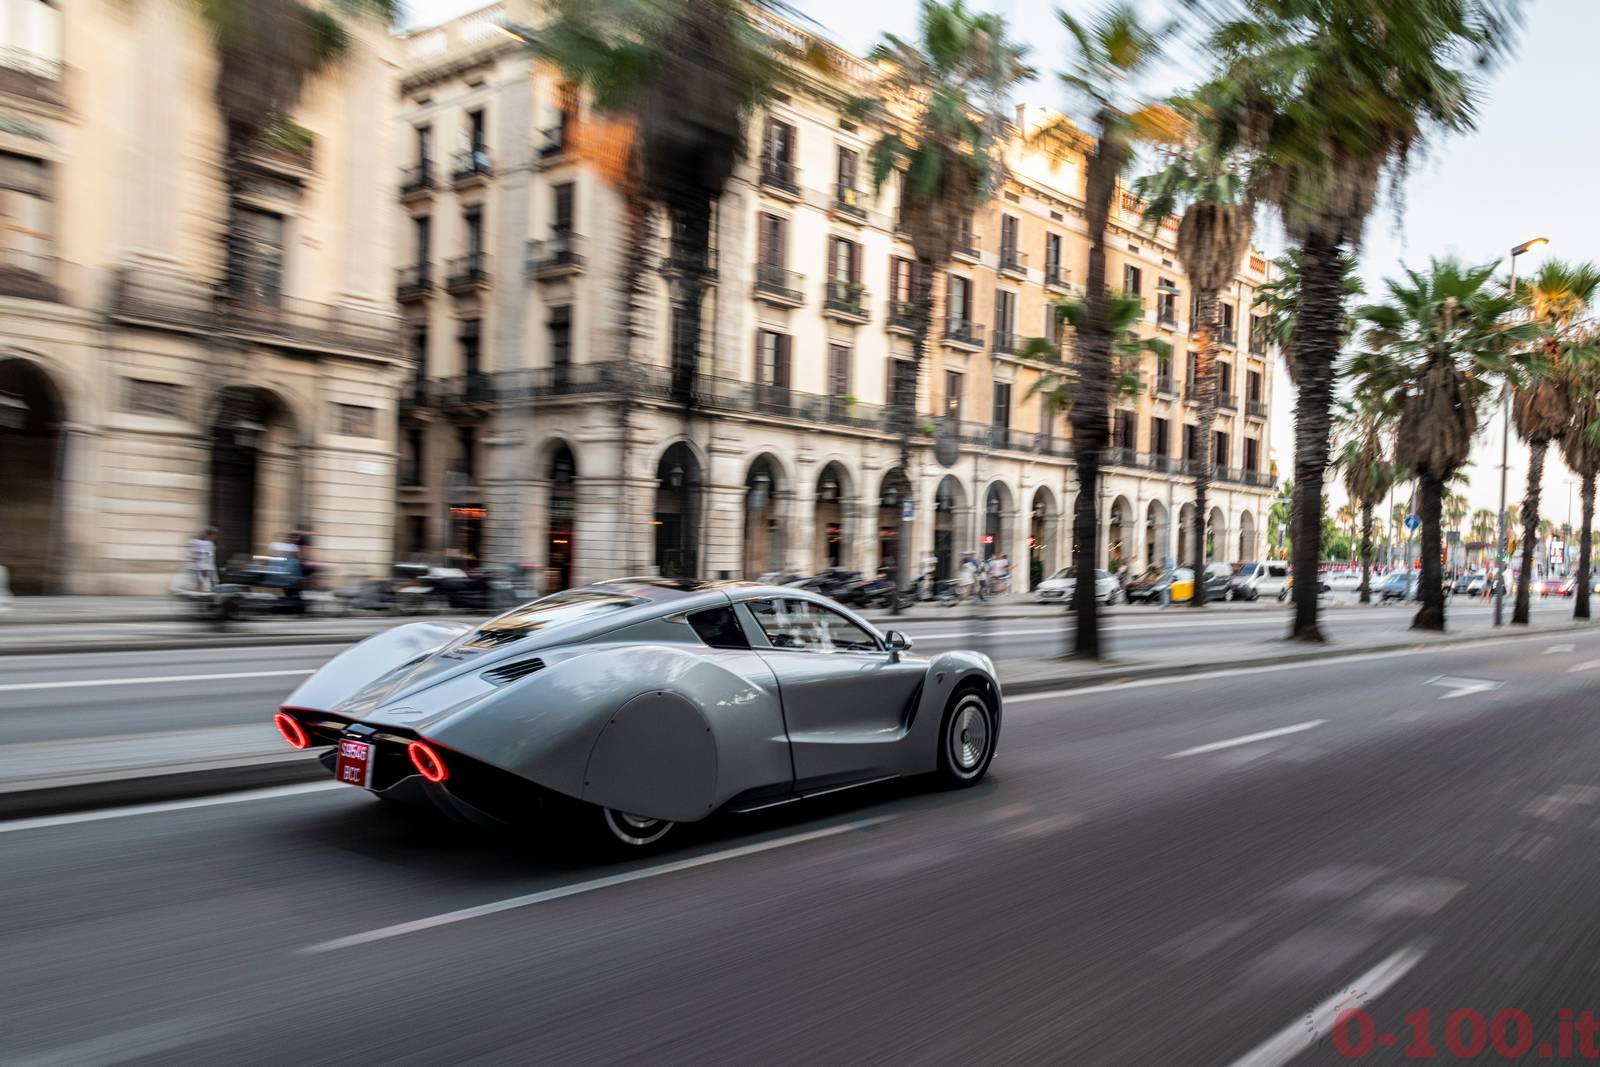 hispano_suiza_carmen_0-100_barcelona_dynamic_debut__0-100_5